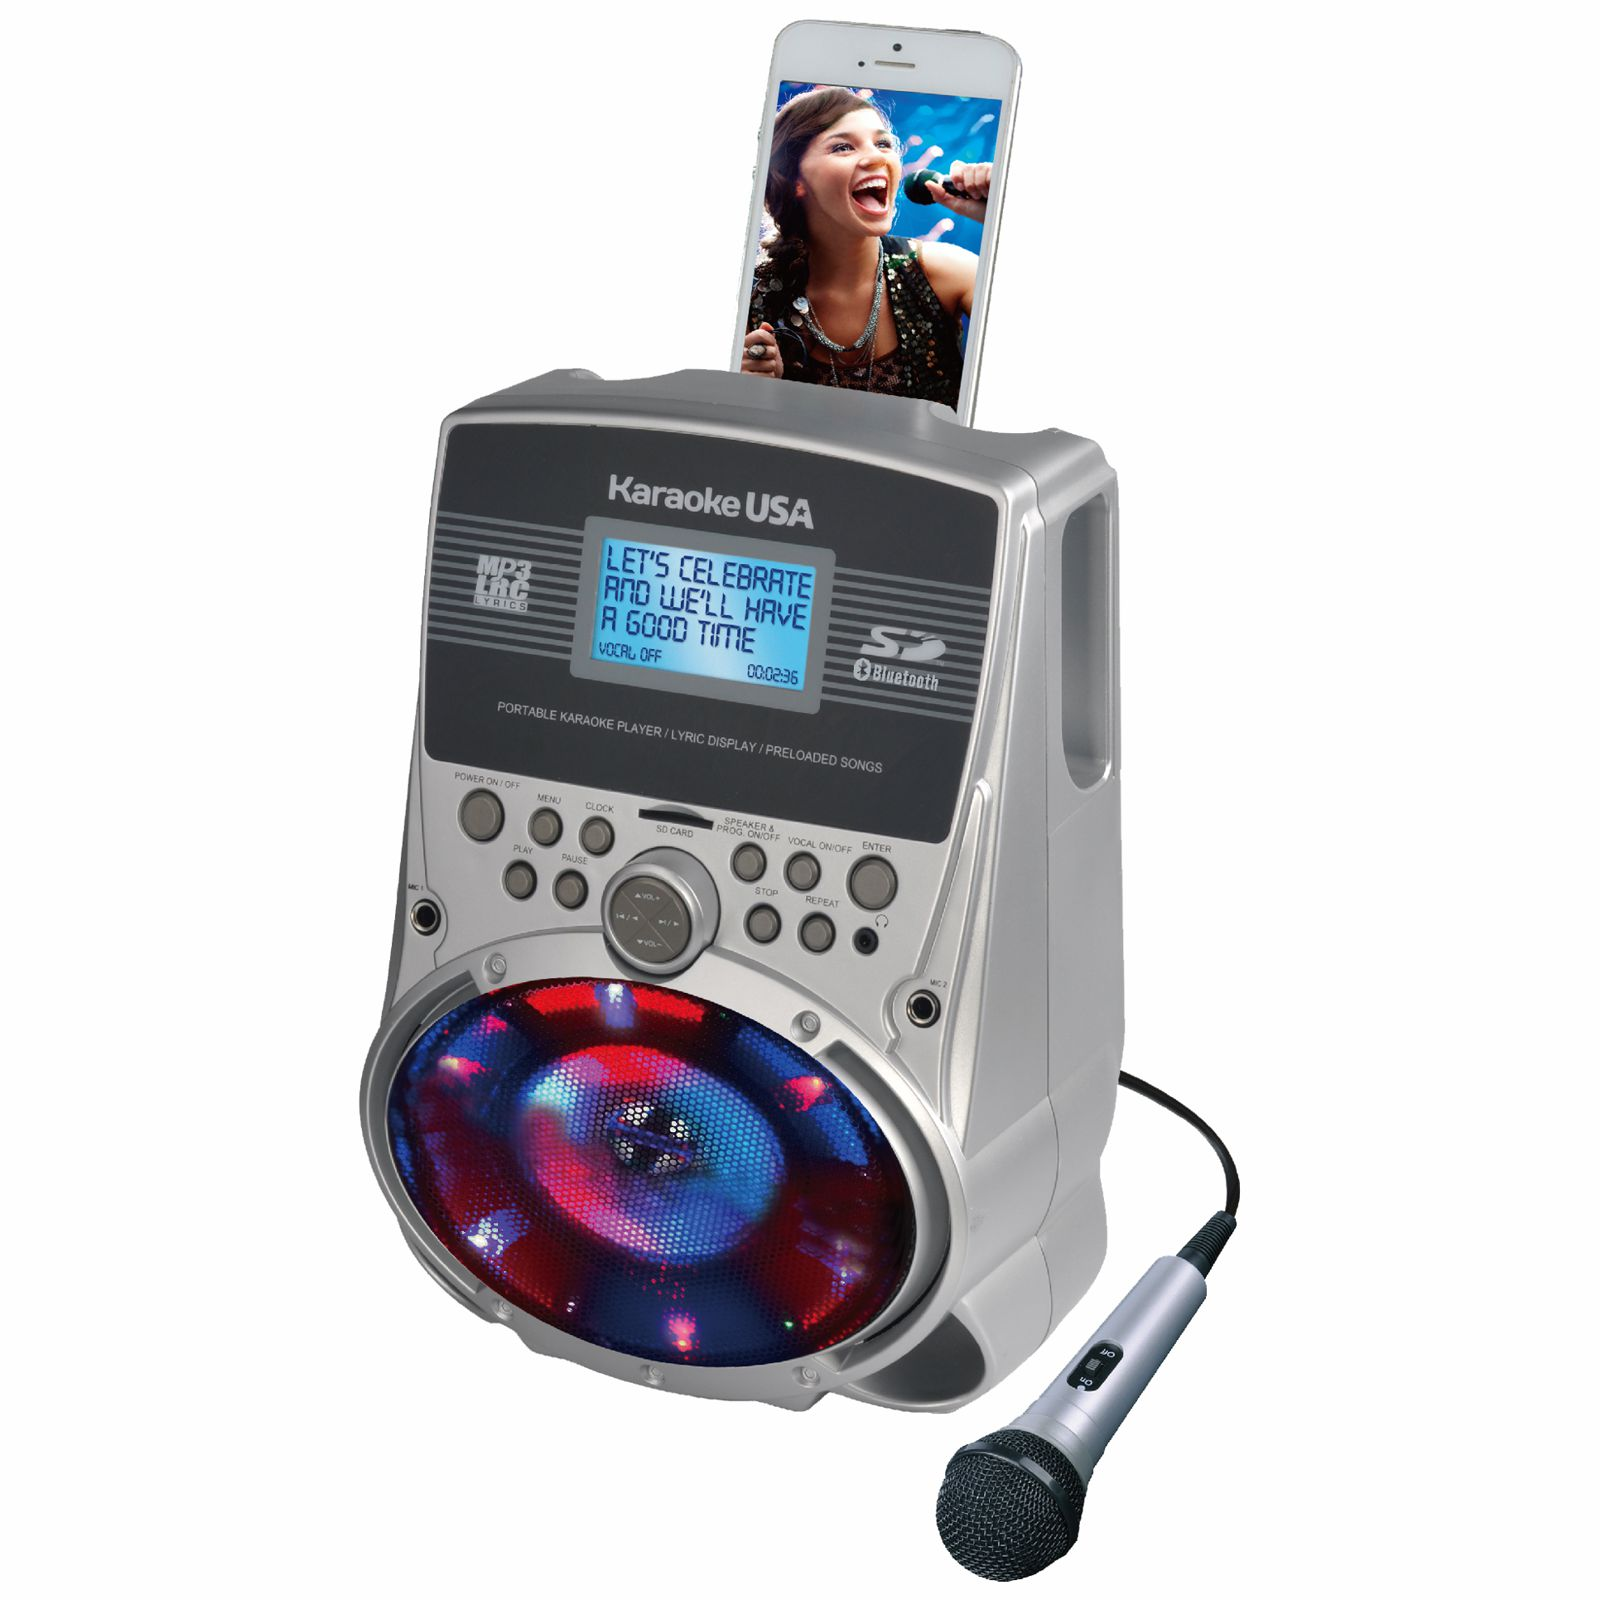 SD517 - Portable Karaoke MP3 Lyric Player with 3.2